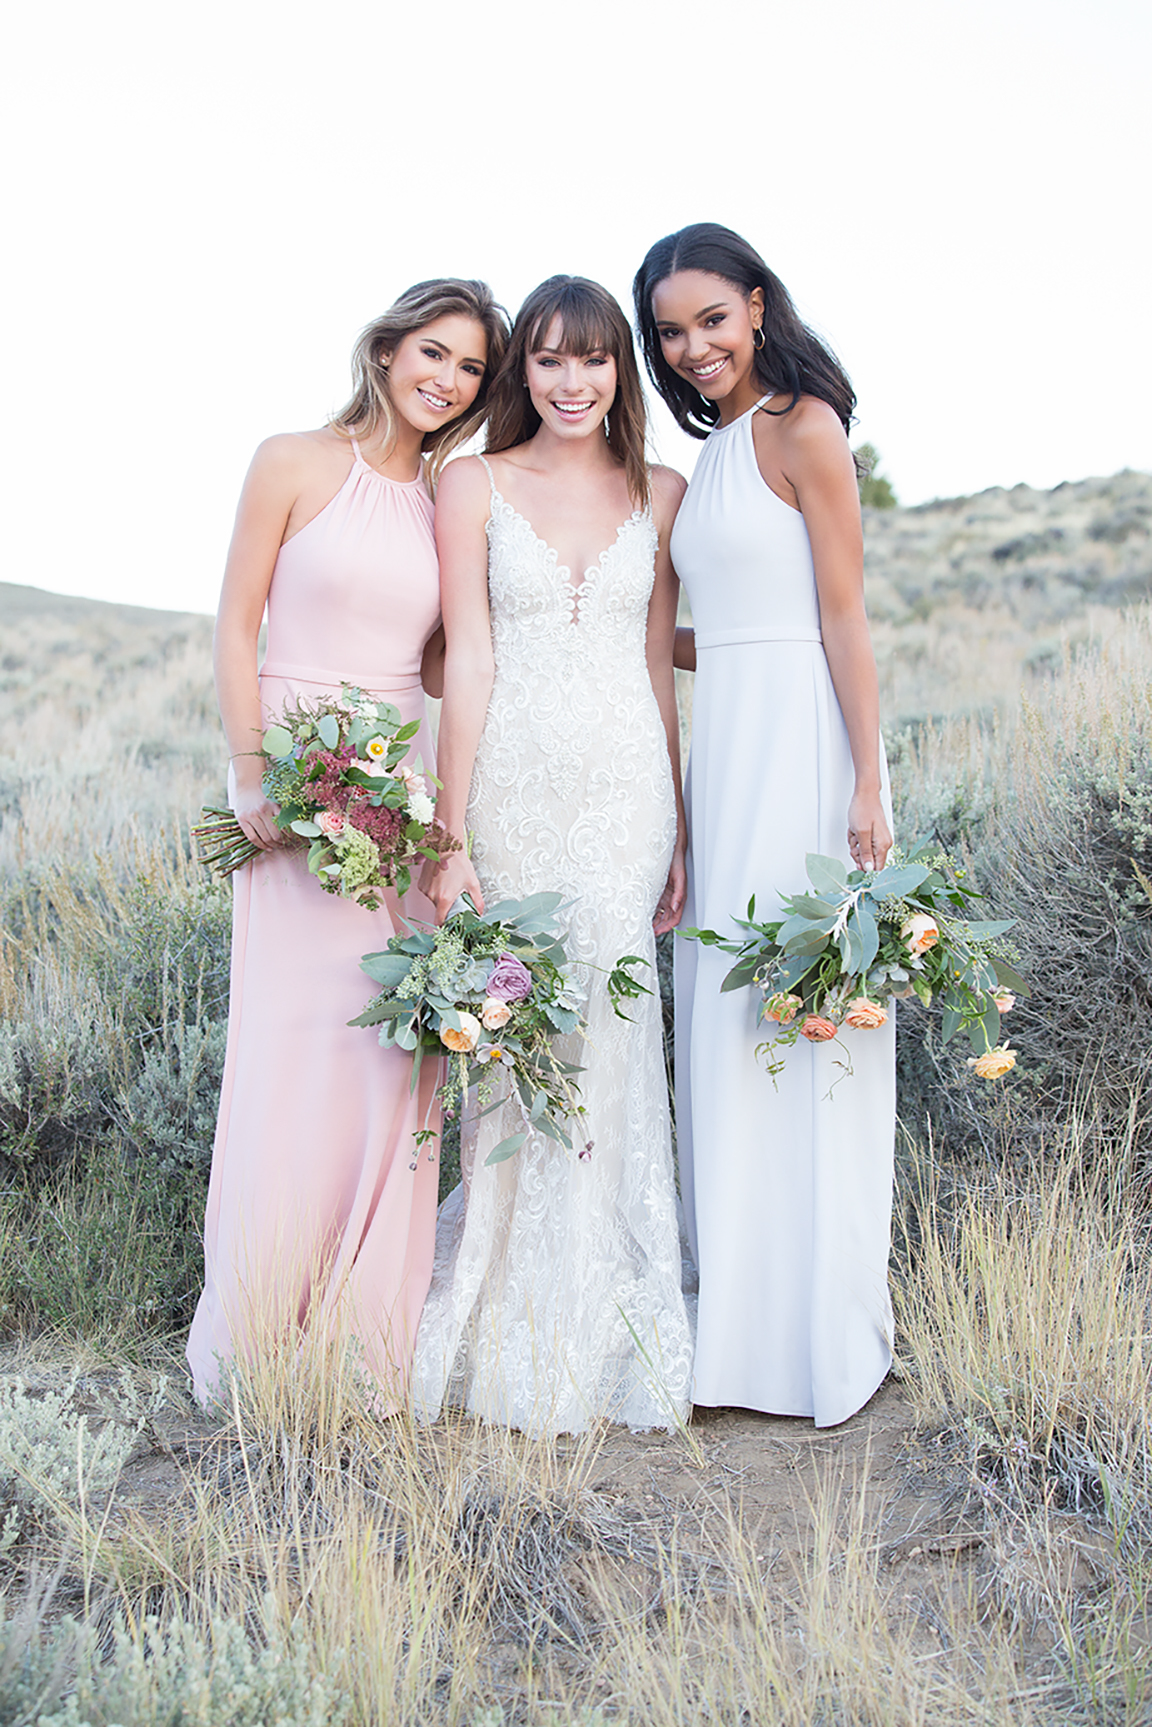 This Is How You Can Win Your Bridal Gown + Attire For Your Entire ...